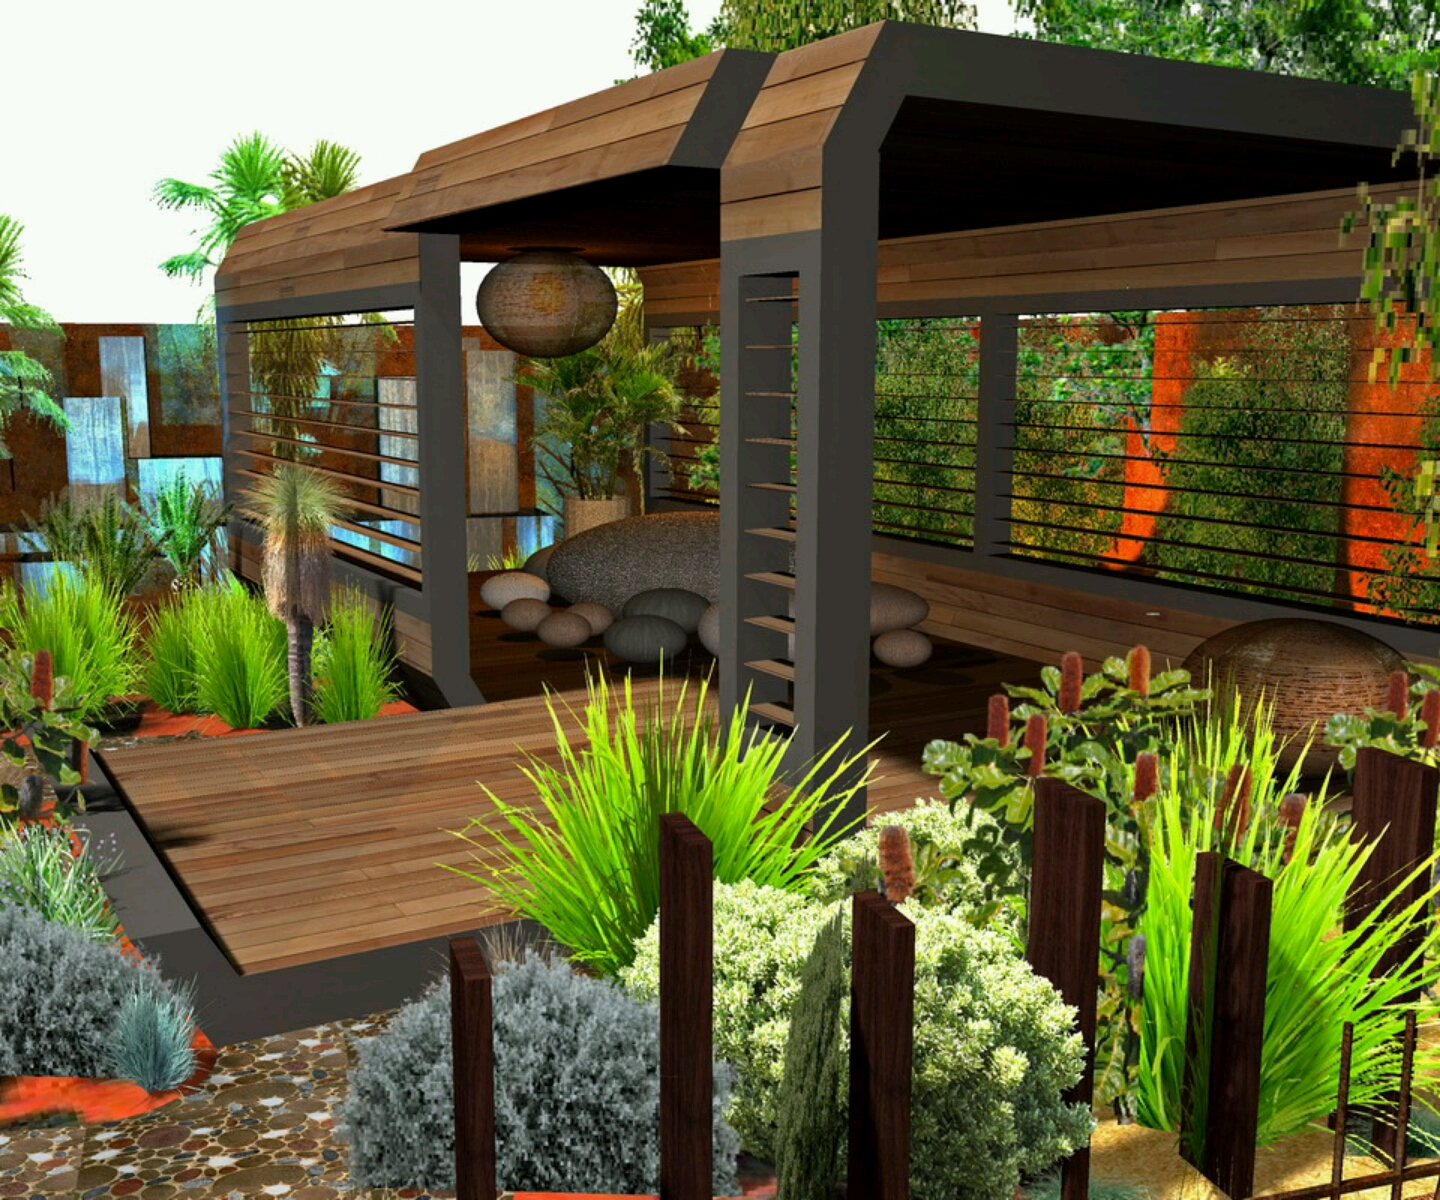 Home And Garden Design Ideas: Modern Homes Garden Designs Ideas.